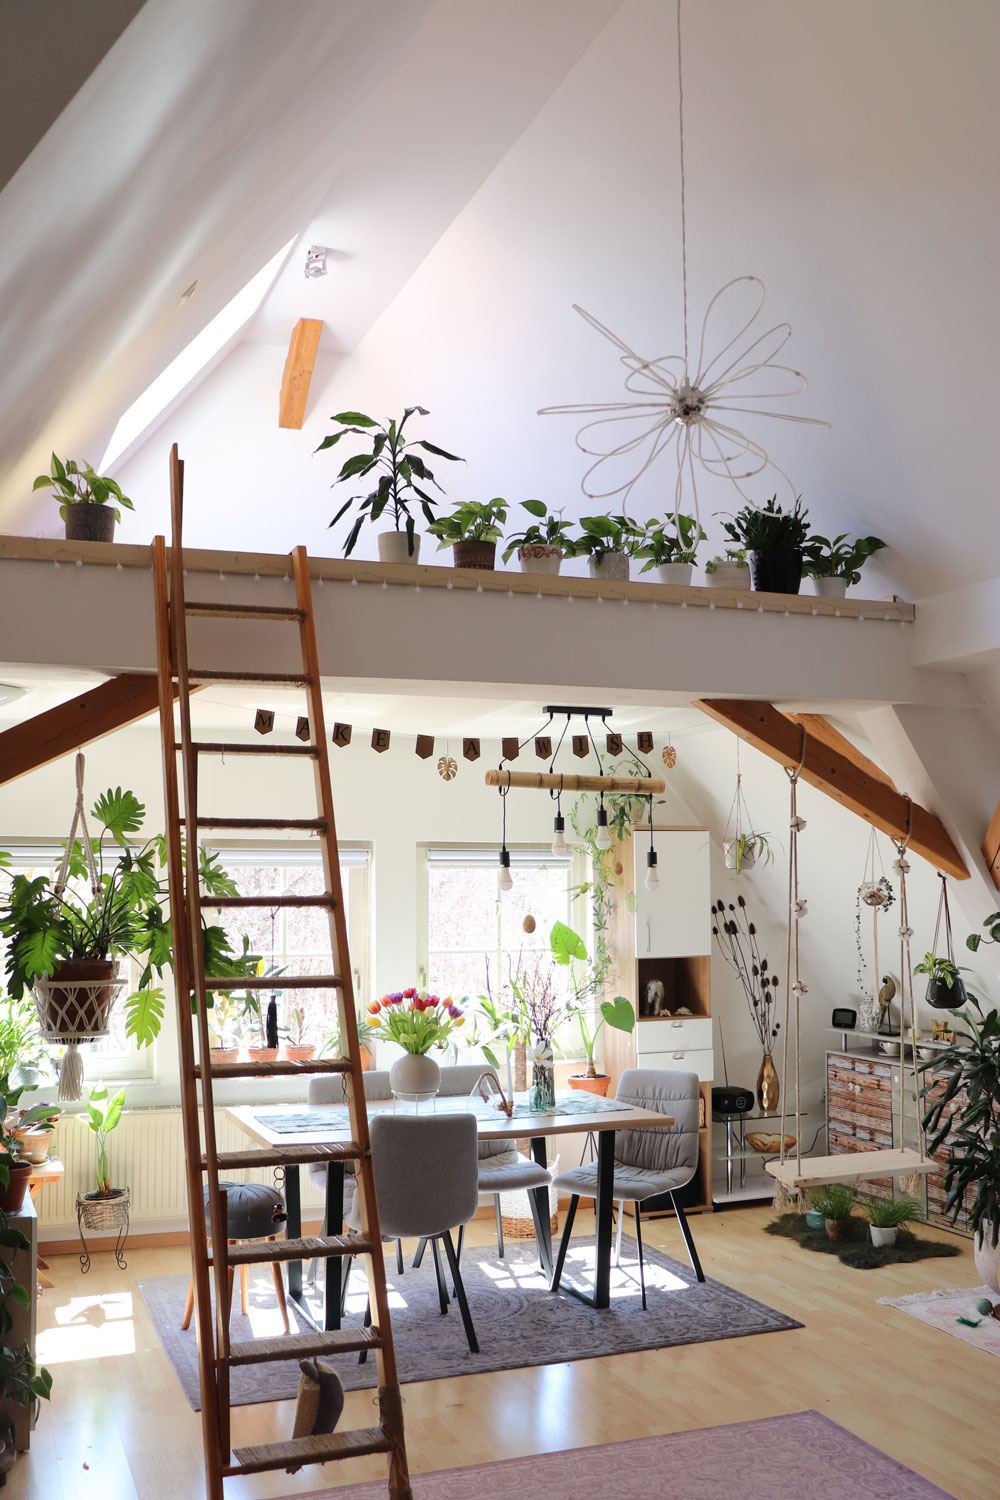 open-living-room-space-with-plants-ladder-and-diy-swing-Kristinas-submission